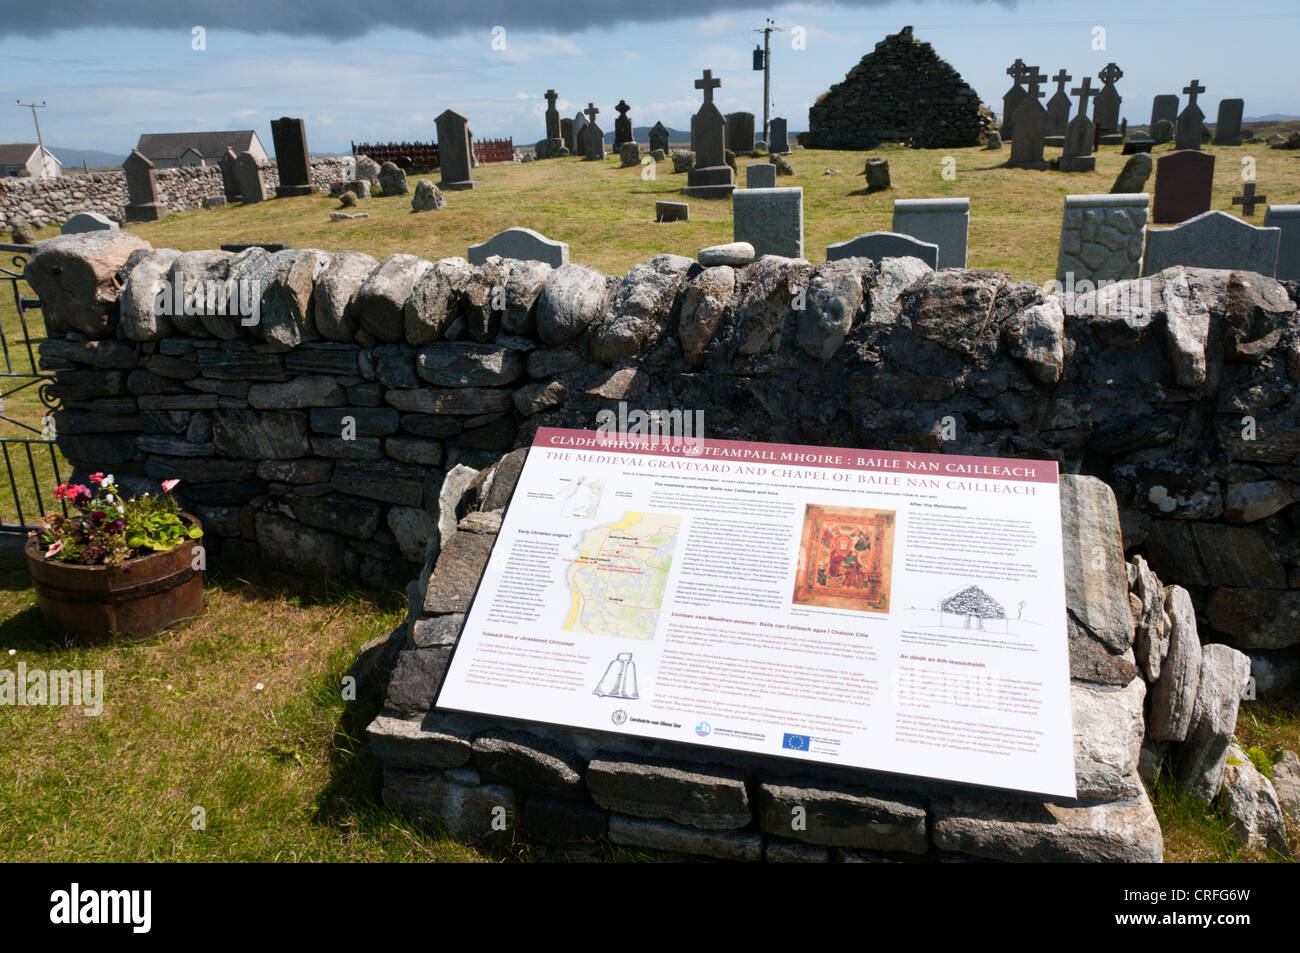 An interpretative sign at Cladh Mhuire chapel and graveyard on Benbecula in the Outer Hebrides Stock Photo